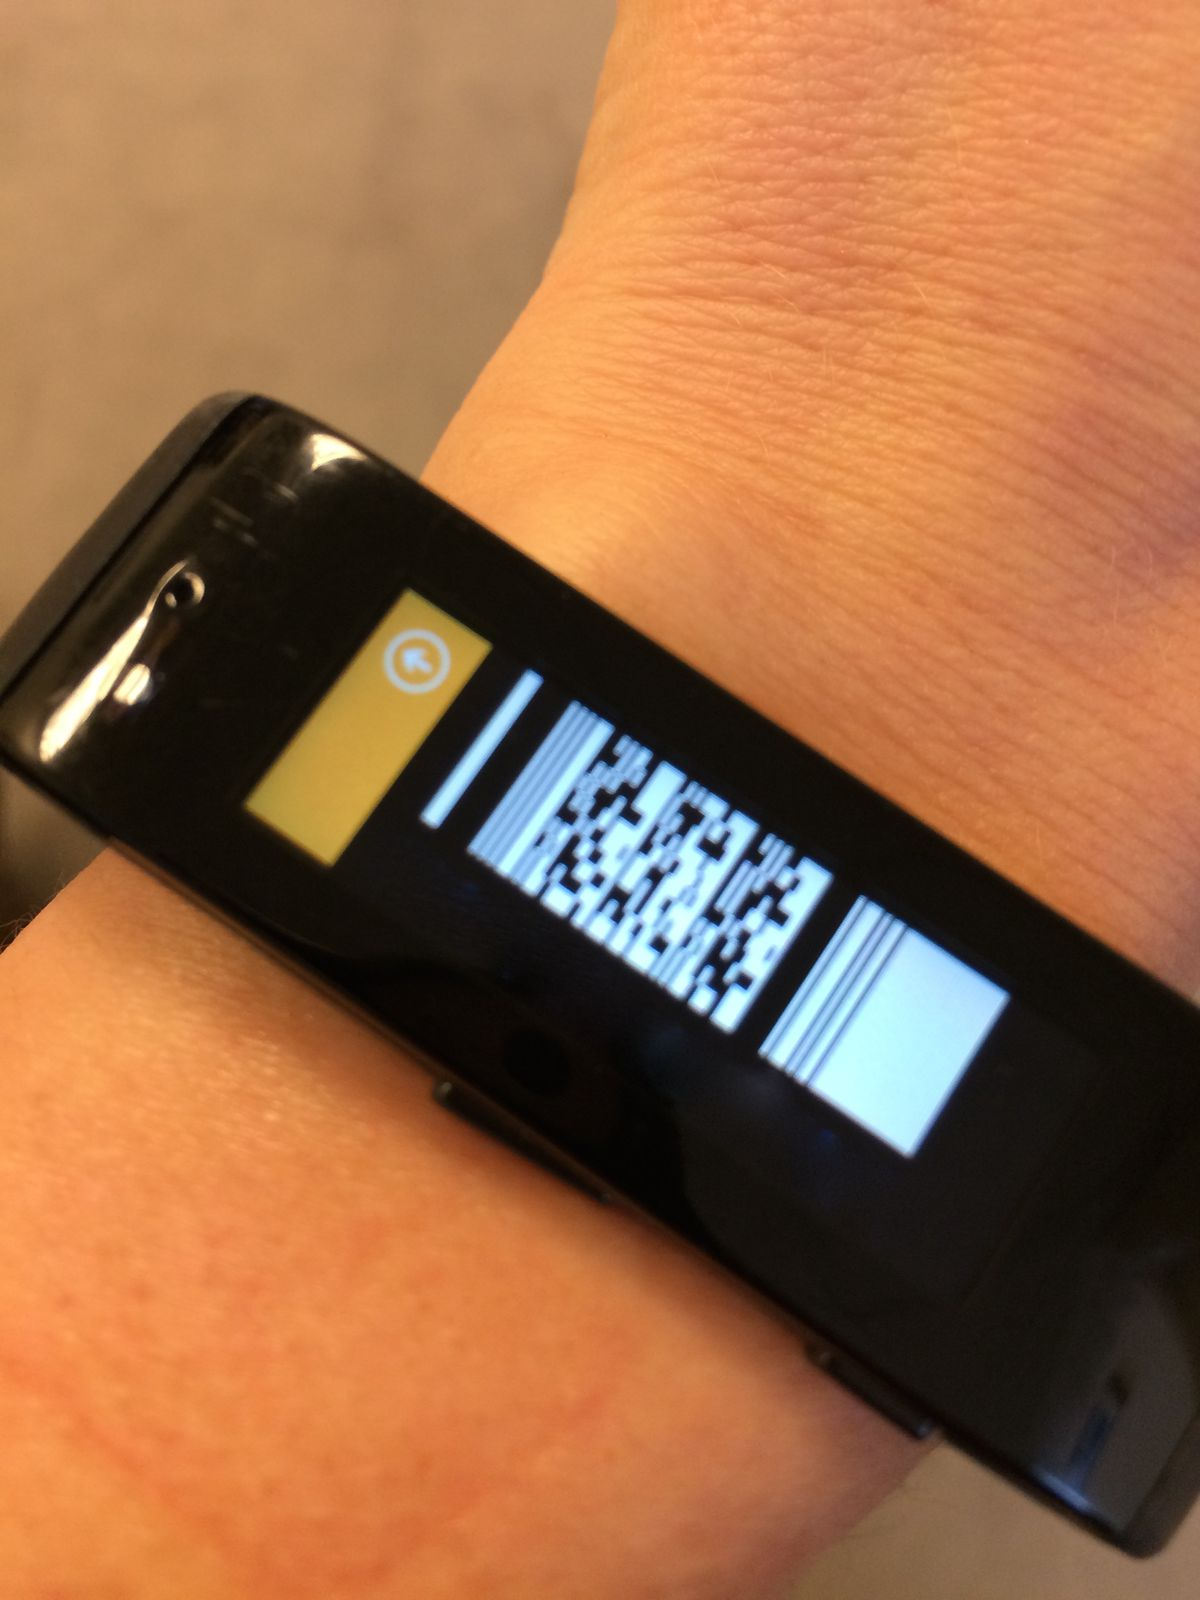 Here's how your wrist looks just before paying for something at Starbucks.